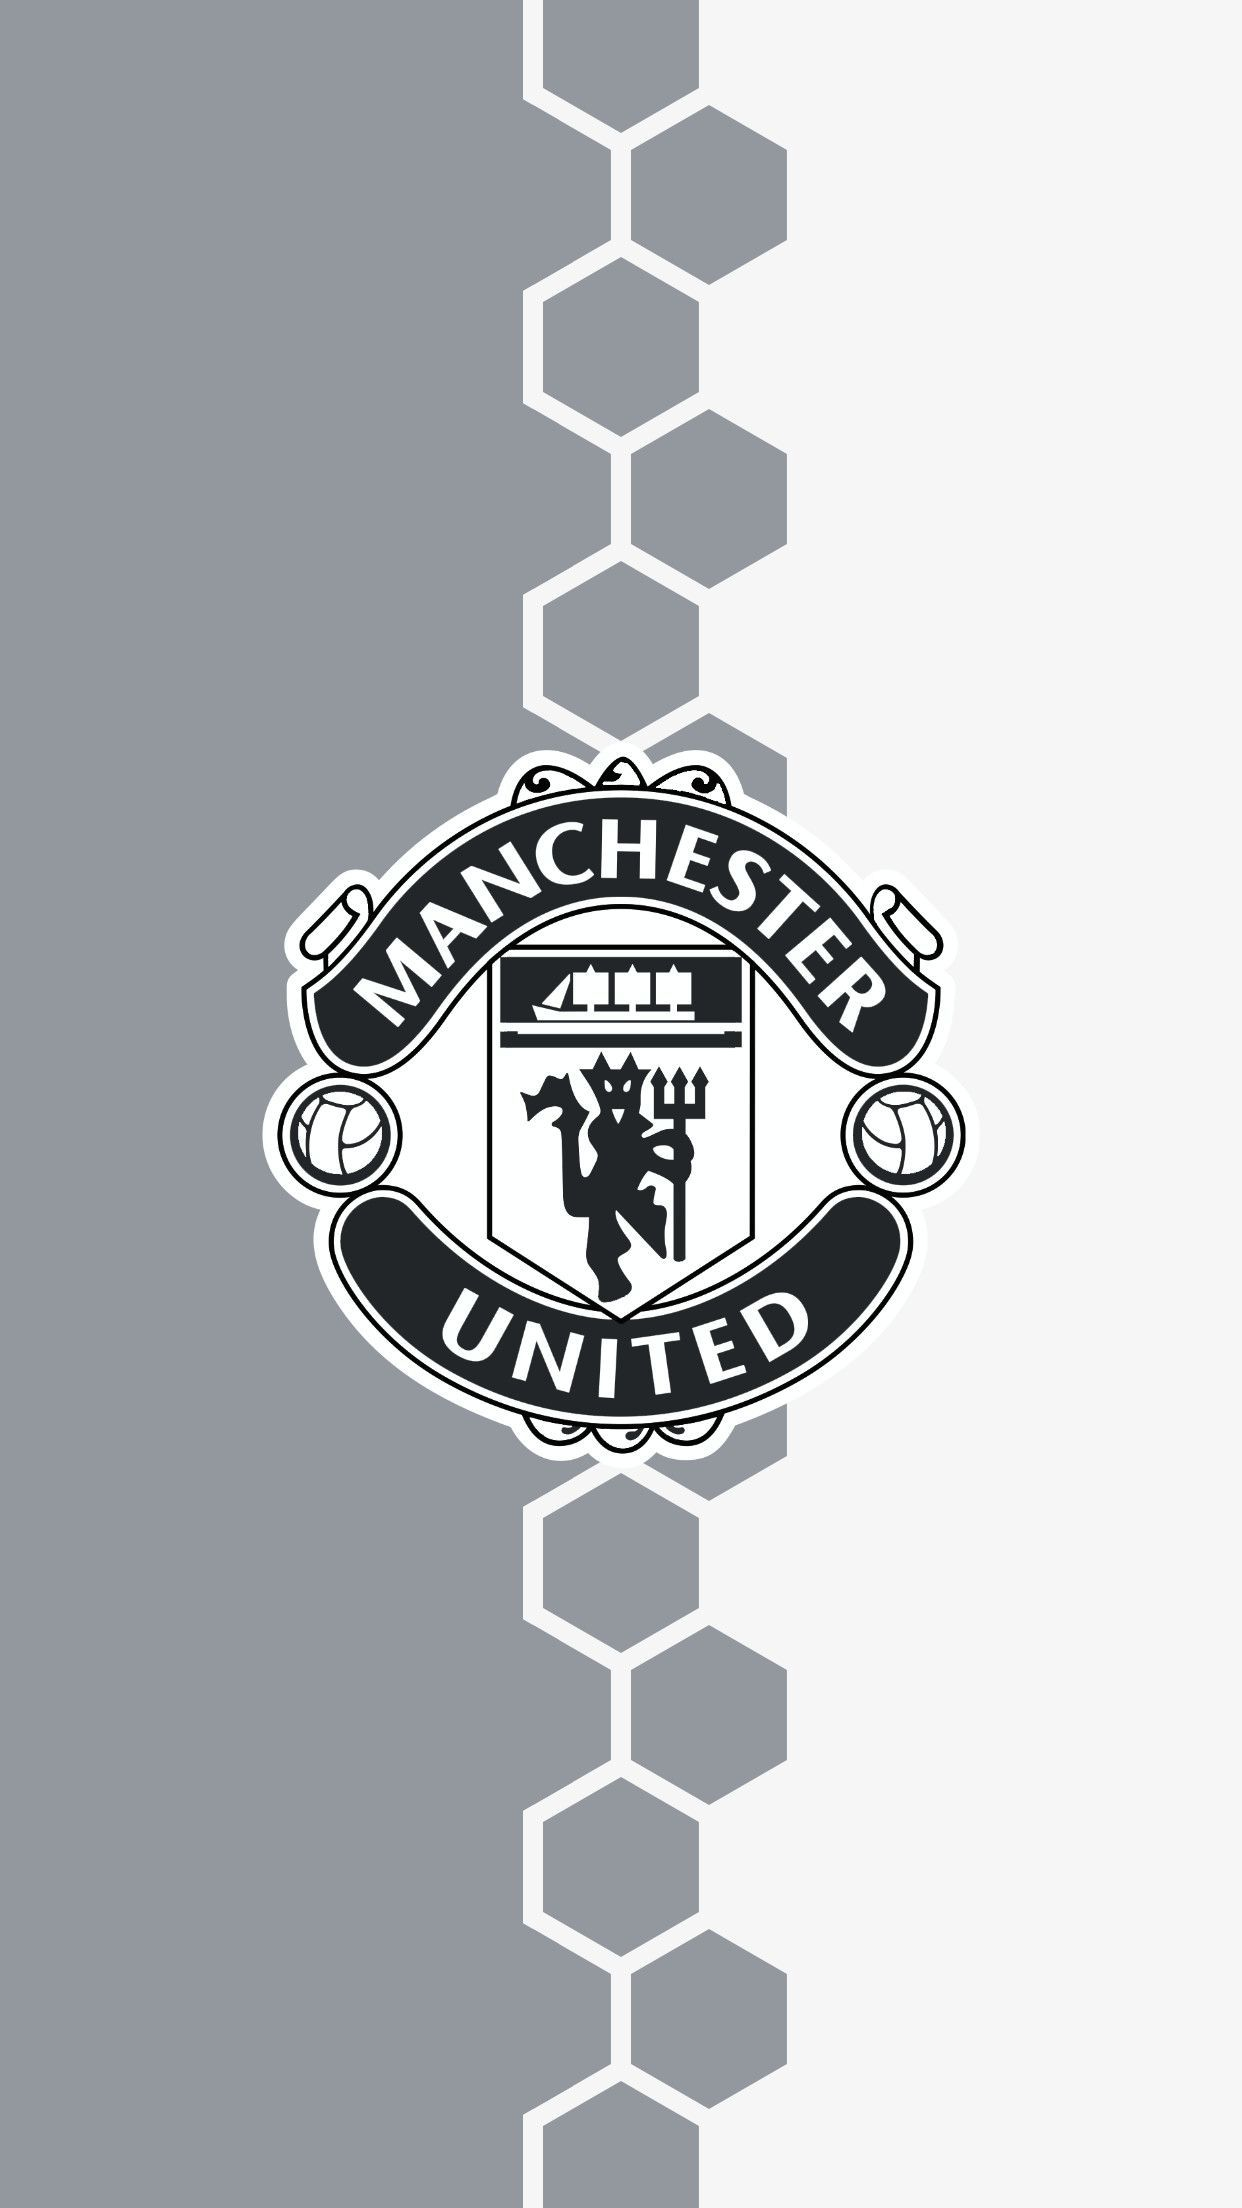 Pin By Aeinun Khosirin On Sepak Bola In 2020 Manchester United Wallpapers Iphone Manchester United Logo Manchester United Wallpaper